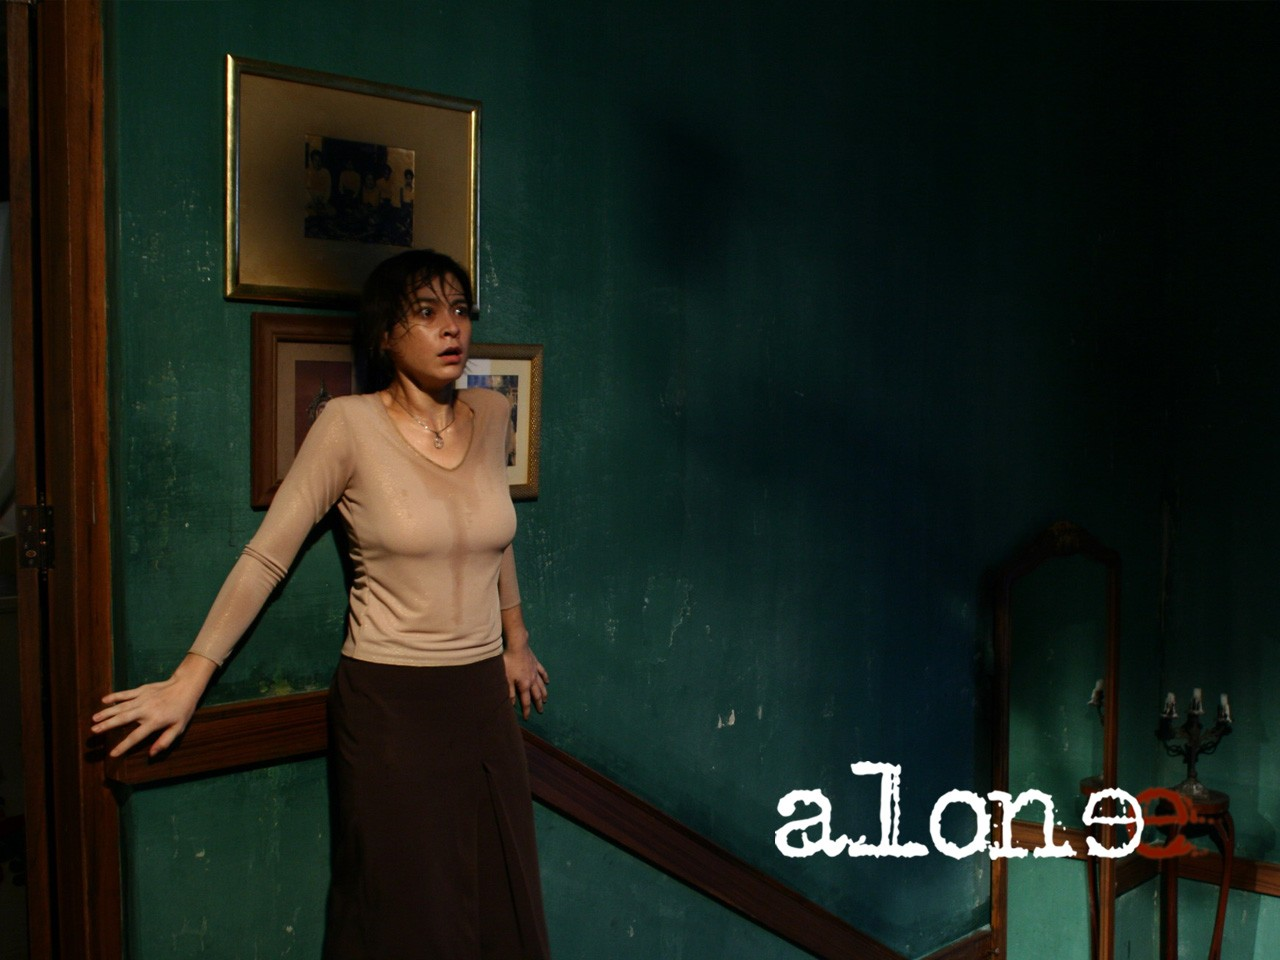 Wallpaper del film thailandese Alone.